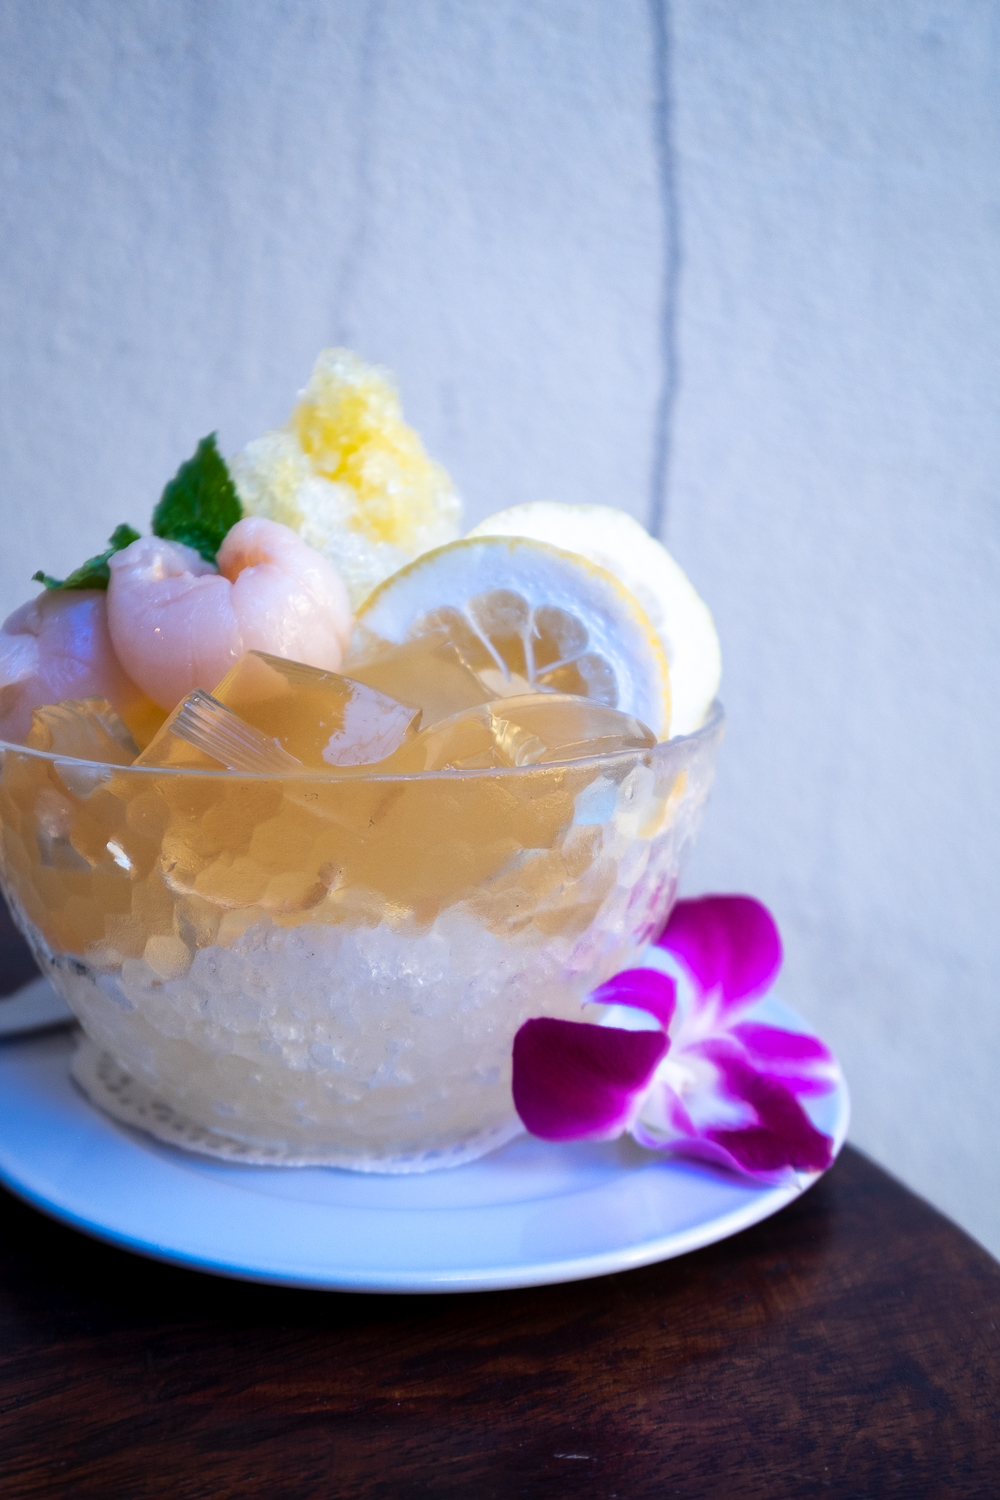 Ow ew is a refreshing Thai dessert of jelly served with ice and honey syrup